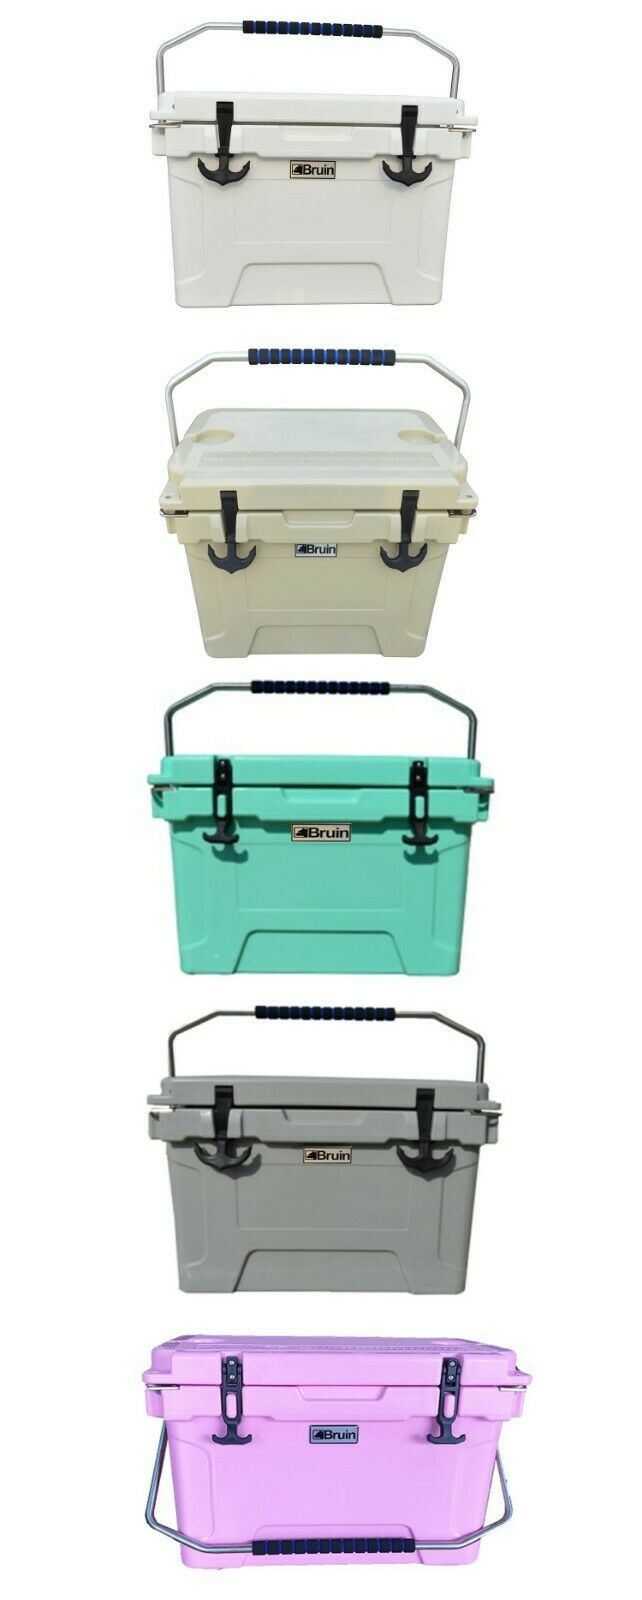 Bruin  Outdoors 20 qt Cub redo-Molded Cooler and Ice Box  sale online save 70%